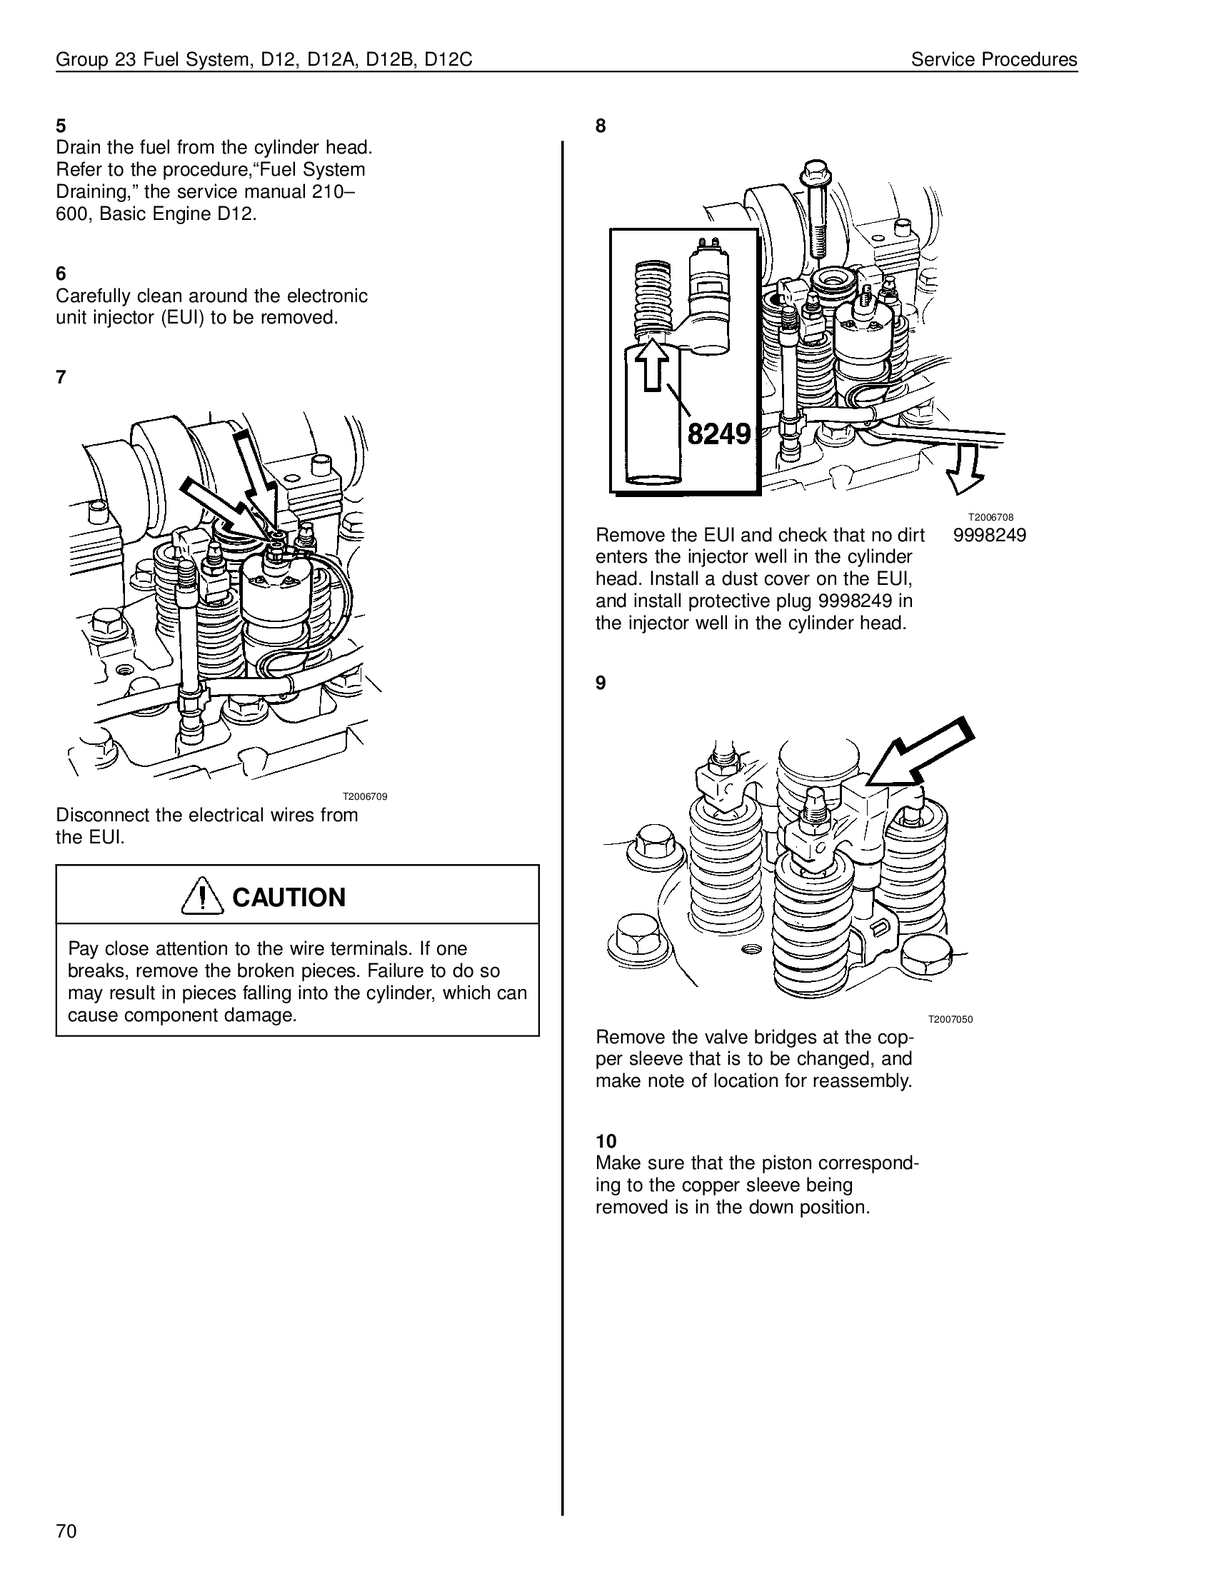 semi truck volvo d13 engine diagram  volvo  auto wiring